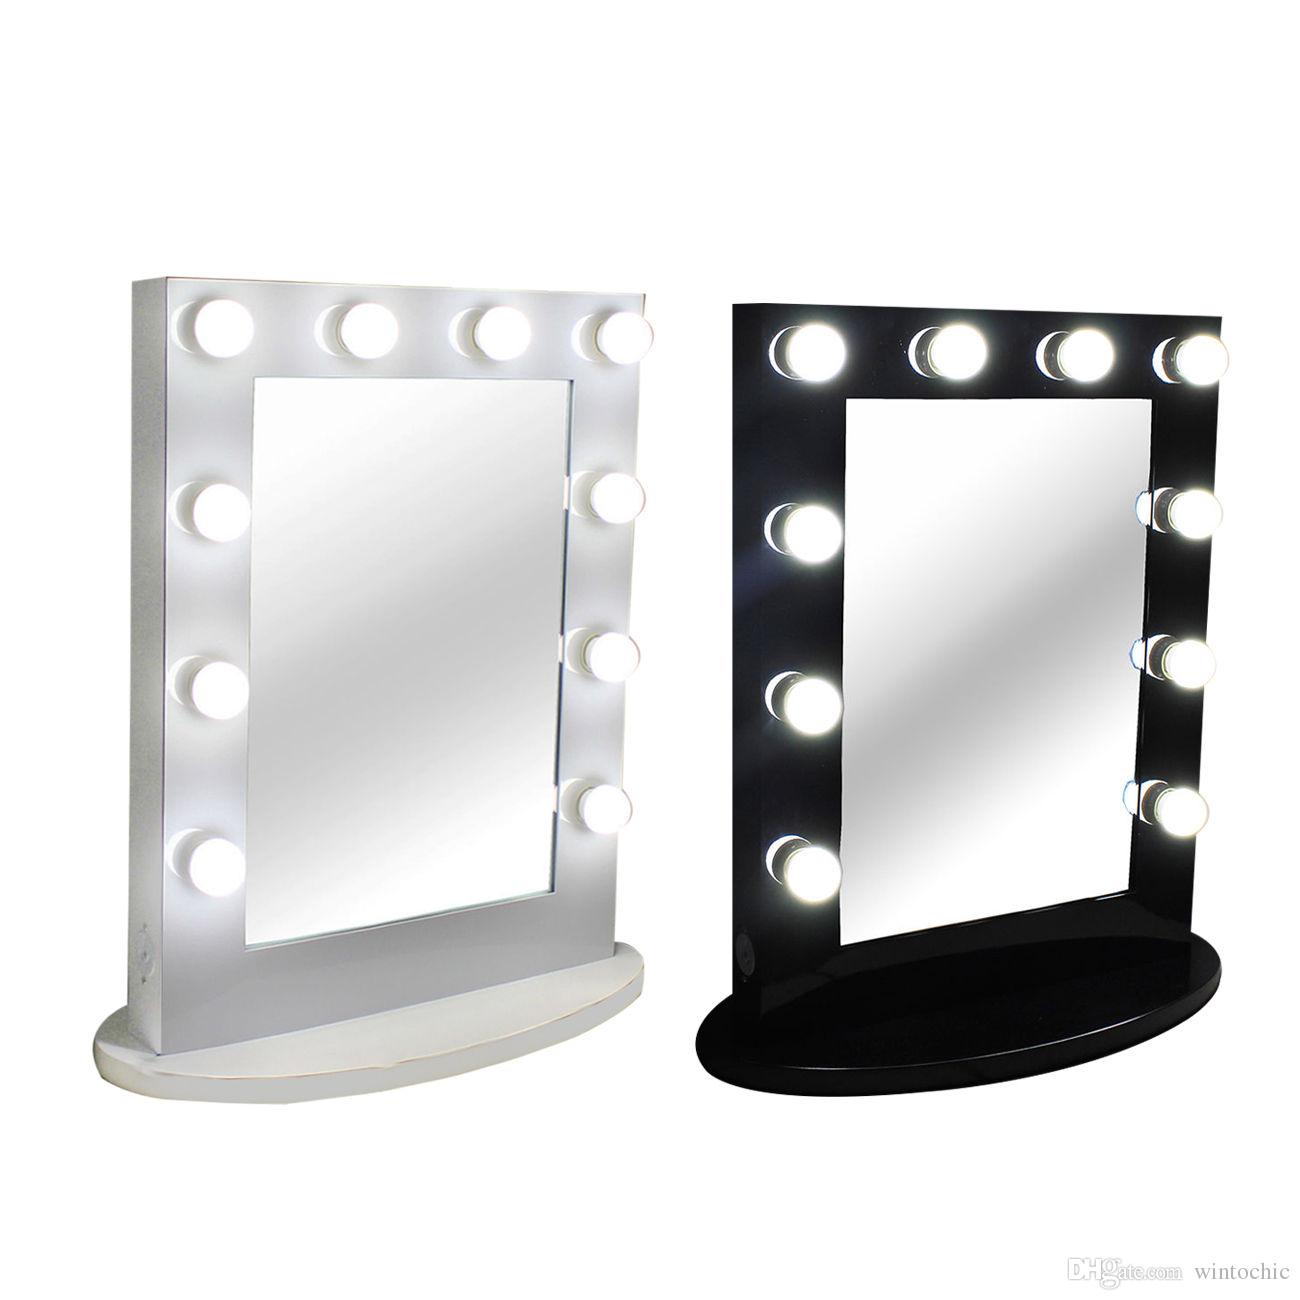 Hollywood tabletops makeup lighted mirror vanity light with dimmer hollywood tabletops makeup lighted mirror vanity light with dimmer aluminum frame stage beauty mirrorfree 12 led bulbs mirrors for bathrooms mirrors with aloadofball Gallery